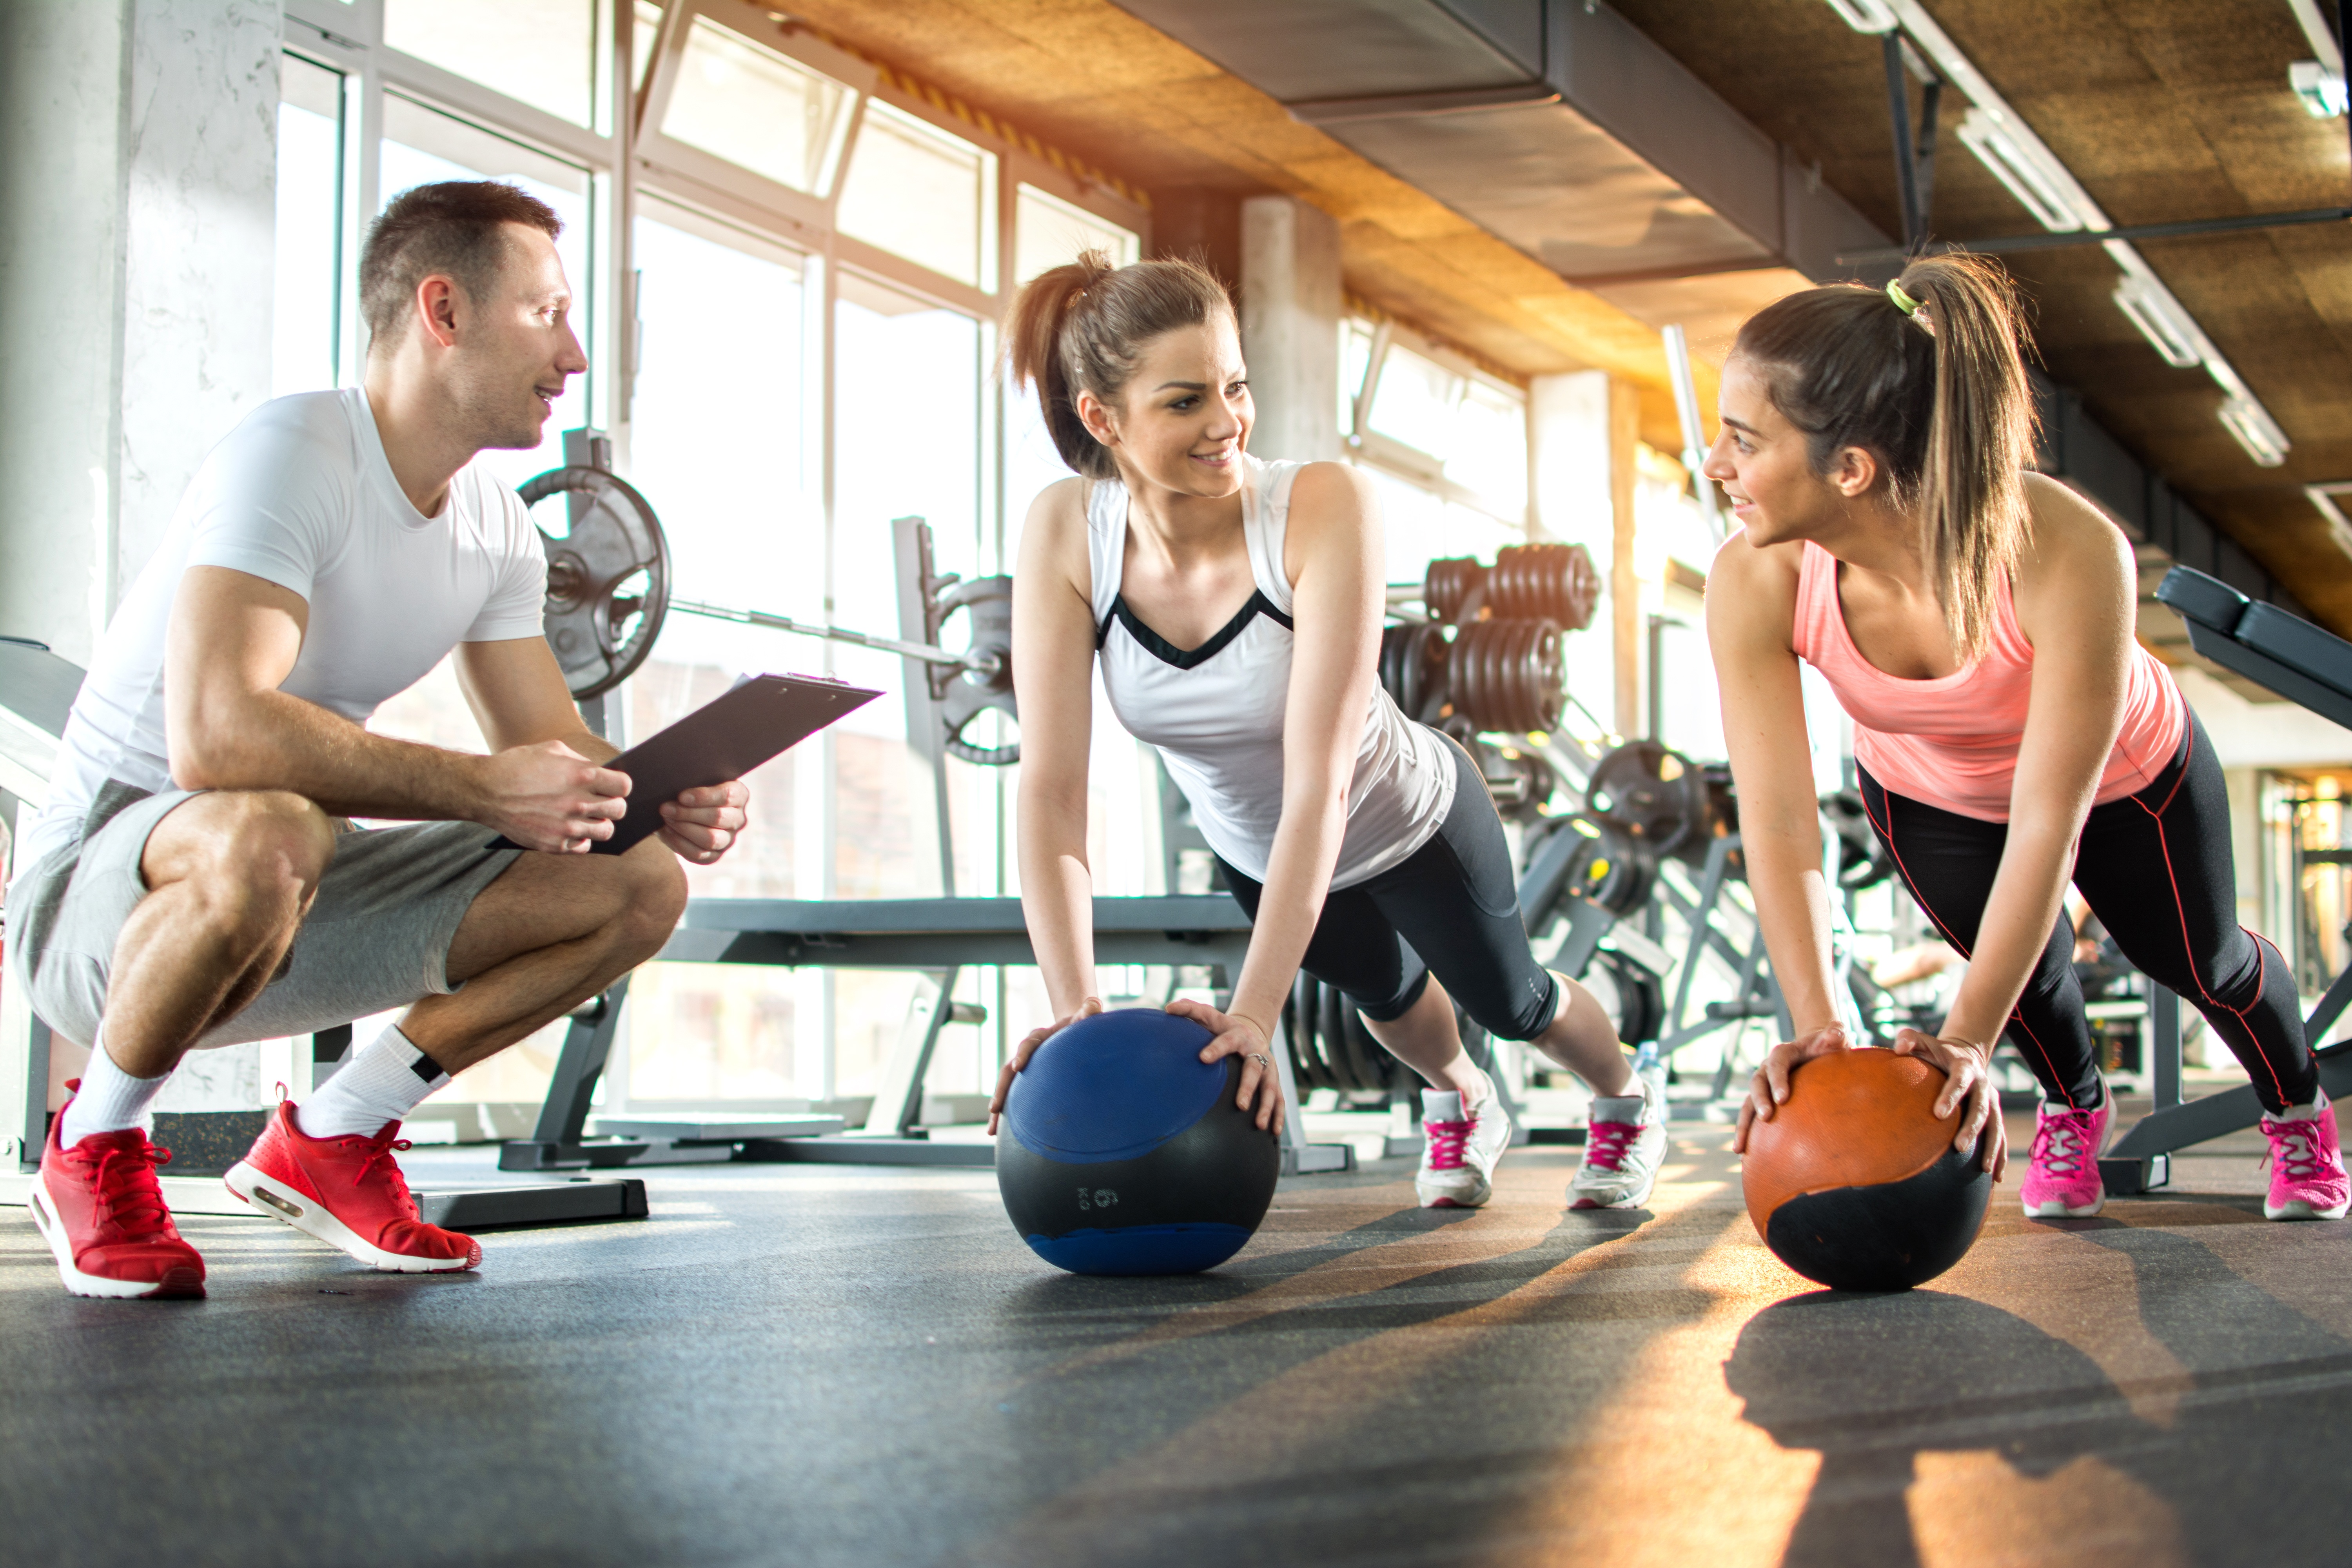 Two-sporty-girls-exercising-with-fitness-balls-while-their-fitness-instructor-tracking-the-progress-on-clipboard.-834605130_6000x4000